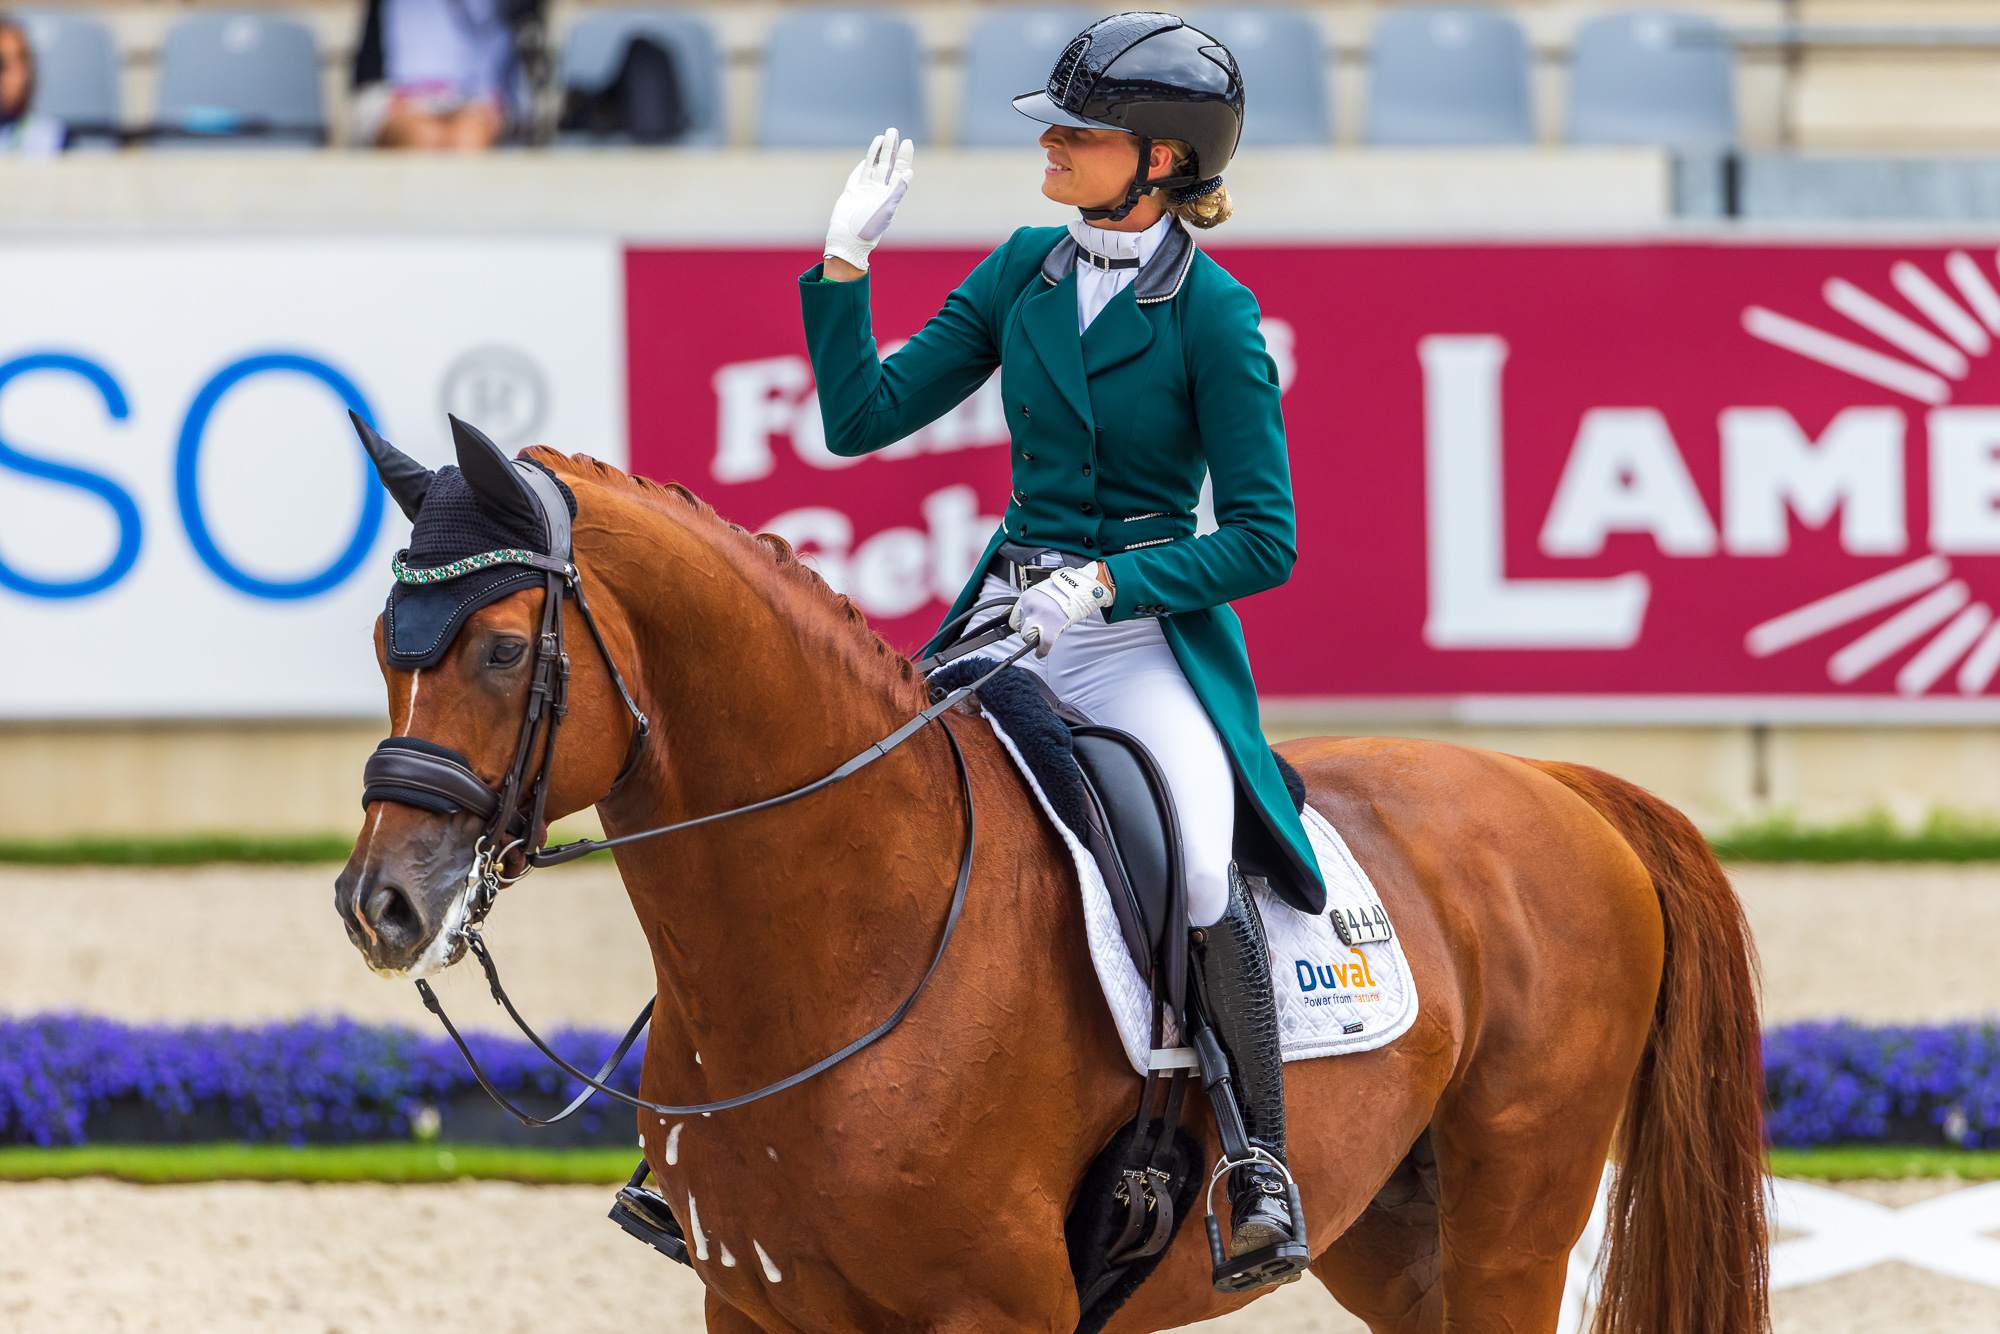 Dinja van Liere takes the win in CDIO5* Aachen, Germany in the lead in Nations Cup